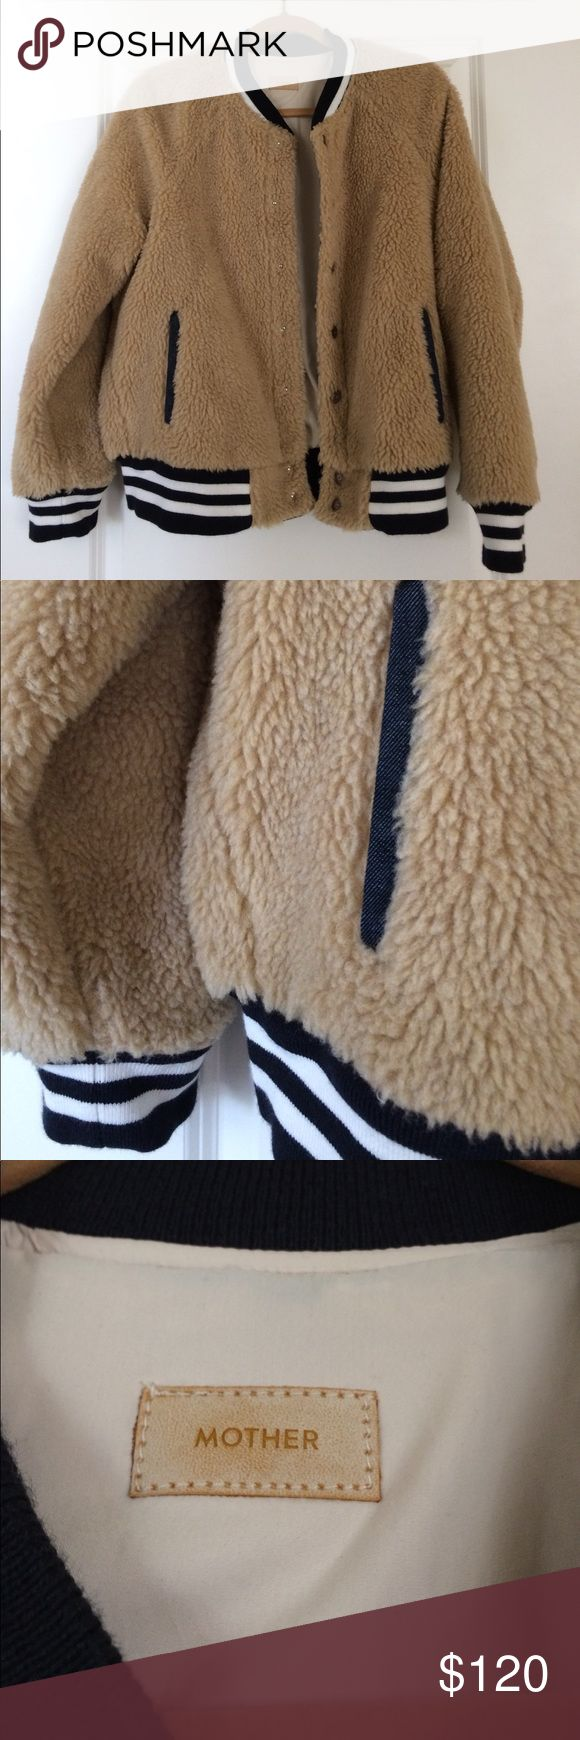 """**NWOT** MOTHER Letterman jacket MOTHER Denim classic Letterman style jacket in """"teddy bear fur"""", size Large (fits almost an XL snugly), new without tags.  Perfect for late spring or early fall! MOTHER Jackets & Coats"""